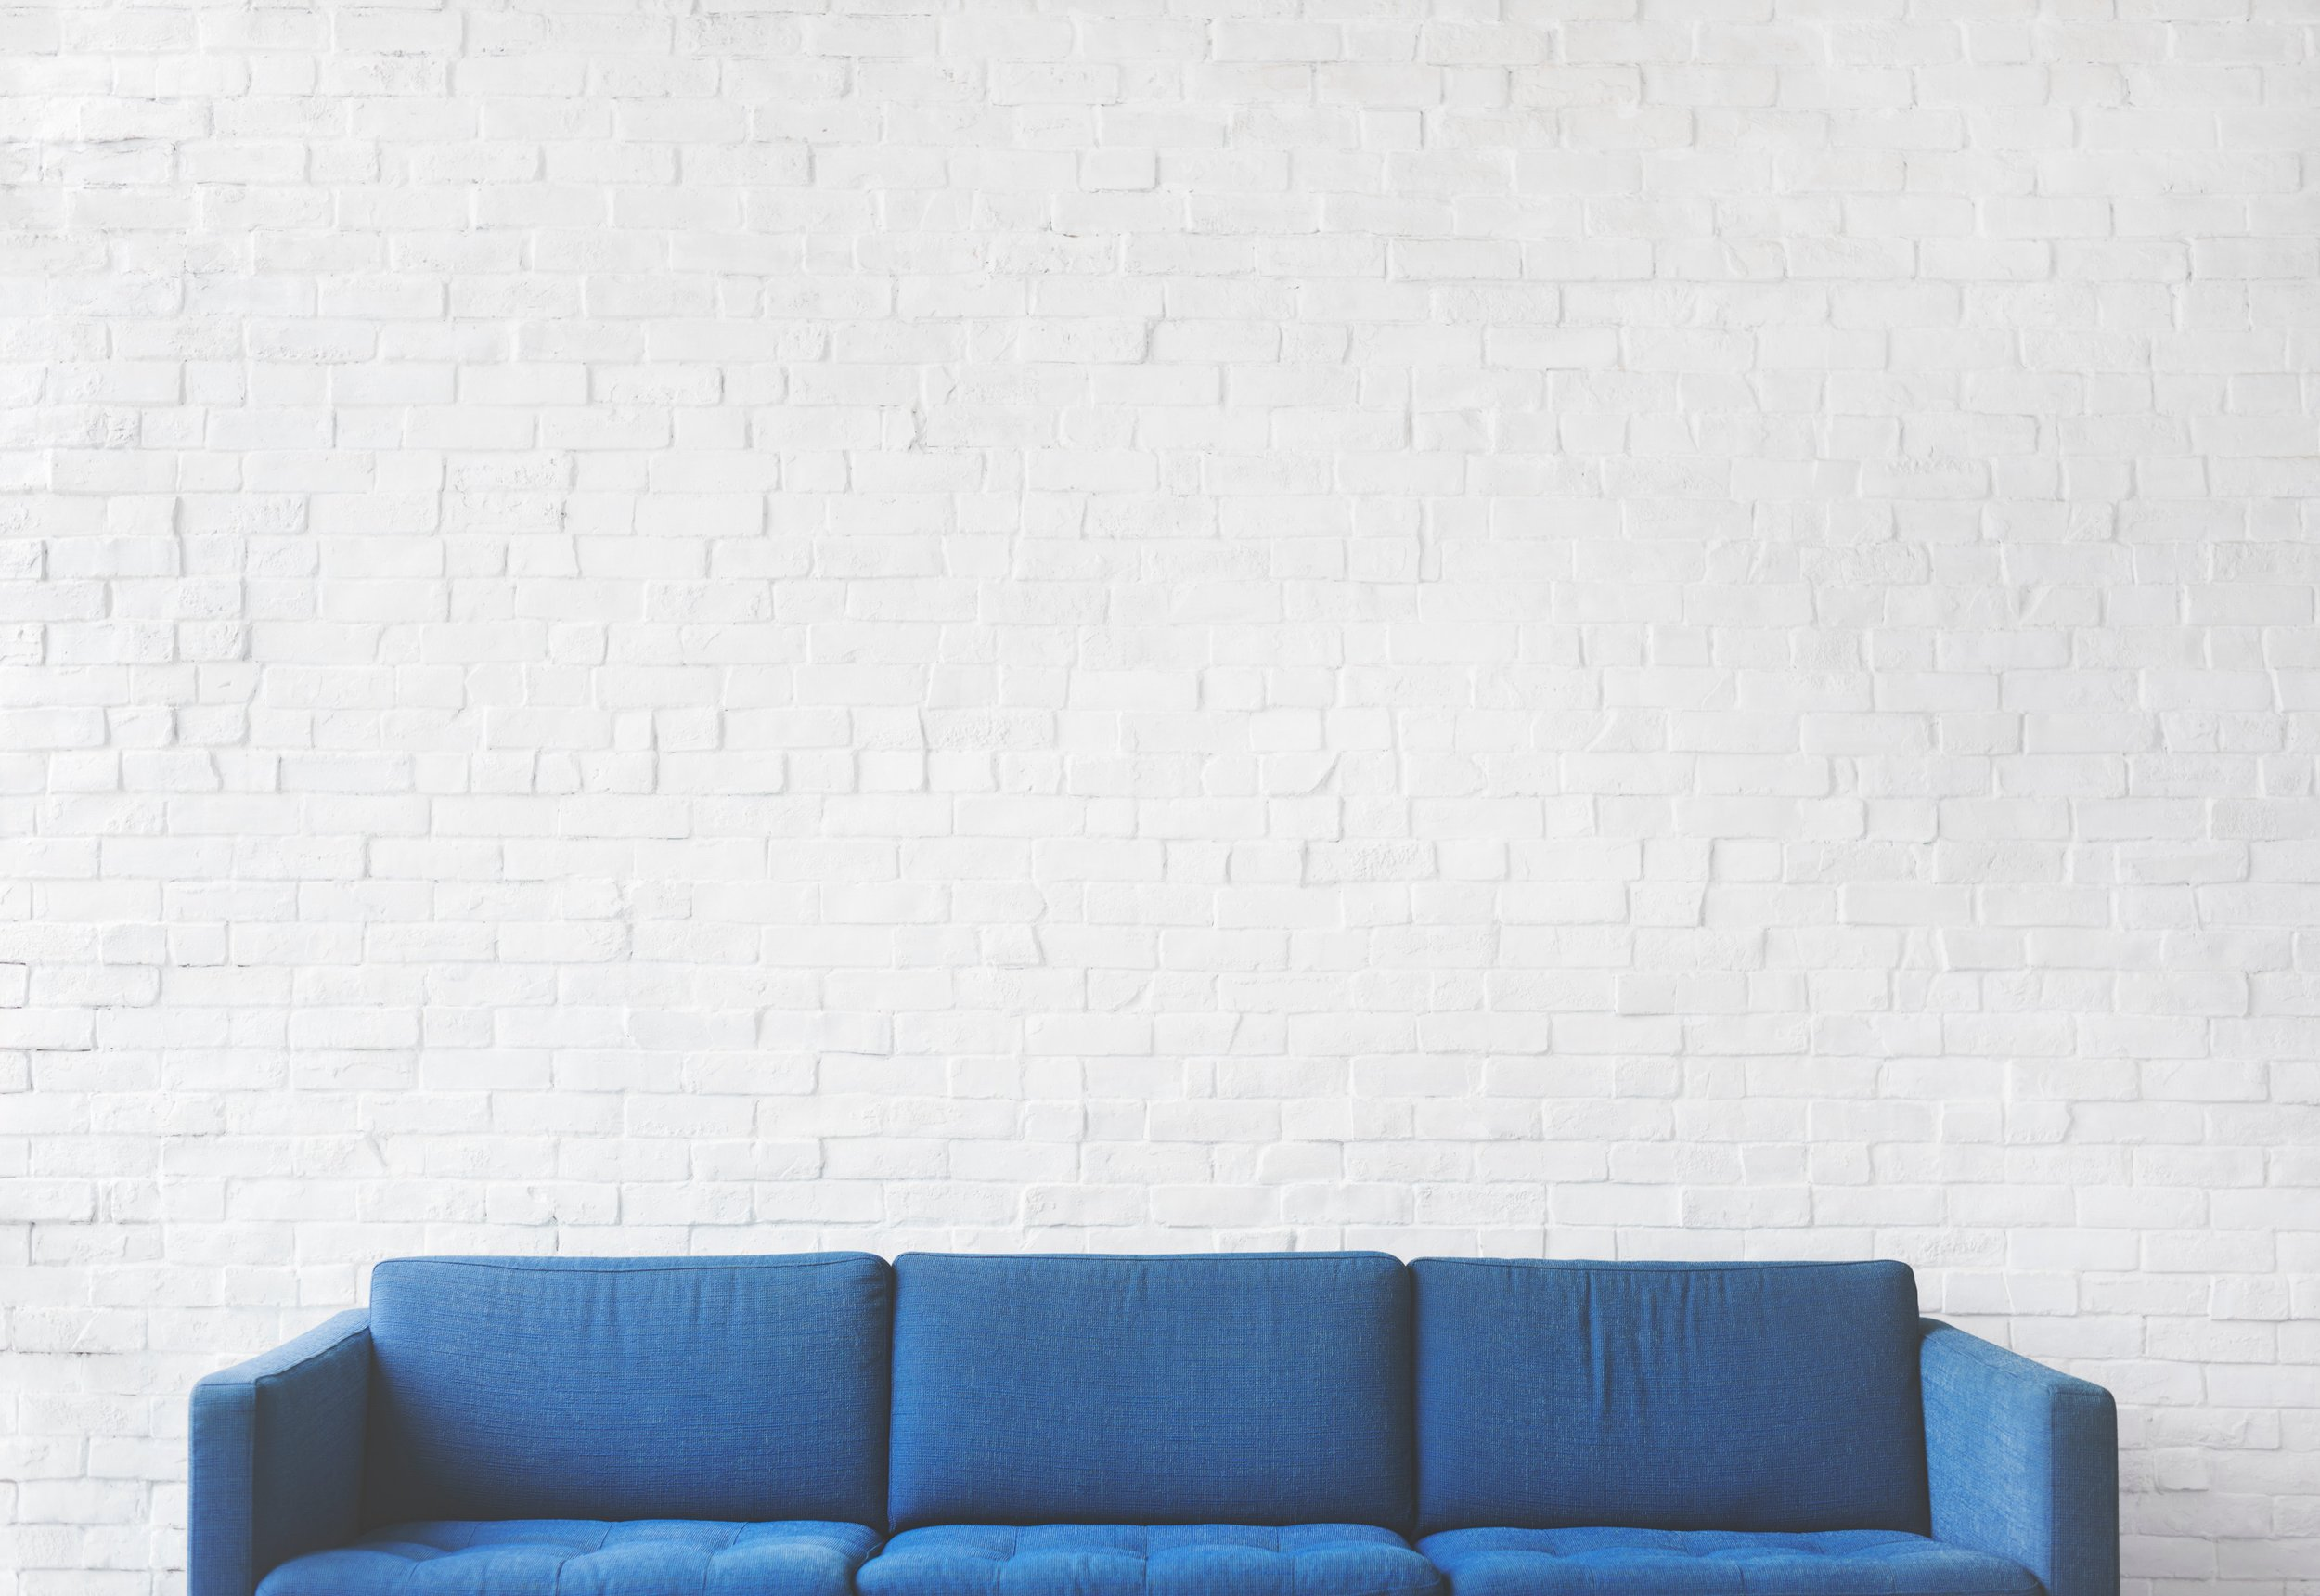 blue-brick-wall-chair-1282315.jpg